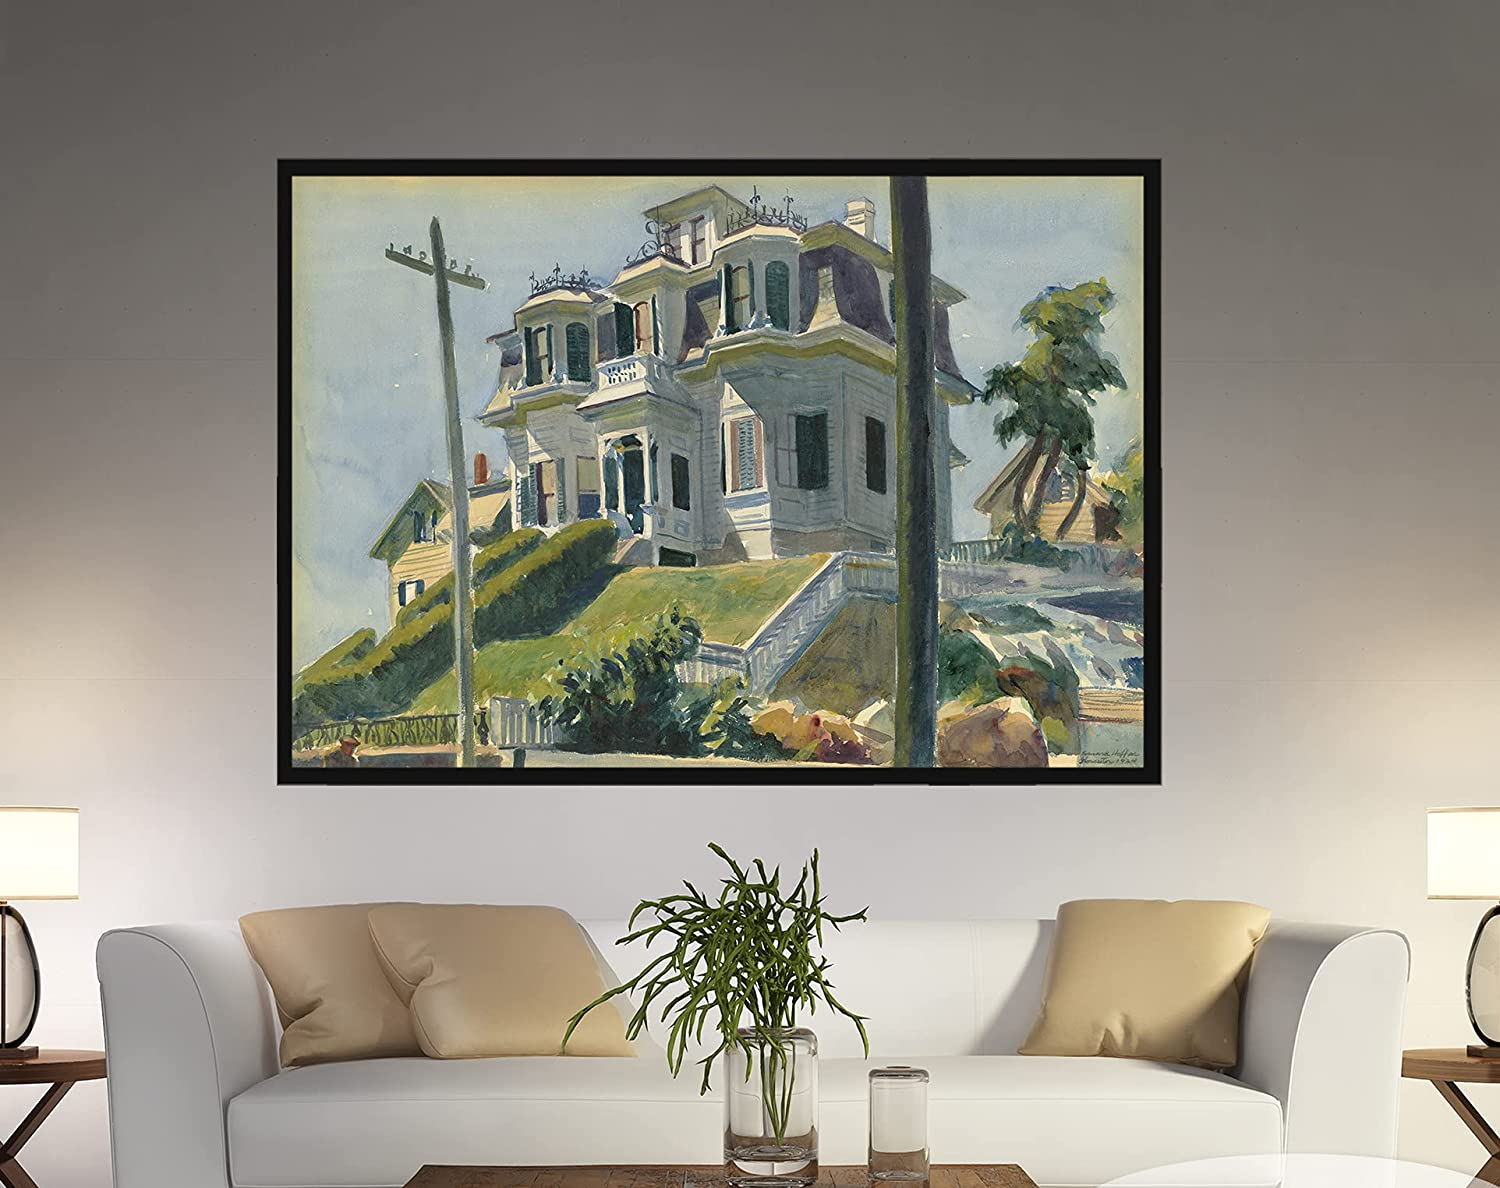 Edward Hopper Beauty products Haskell's House Print Cheap mail order specialty store Hooper Hopp